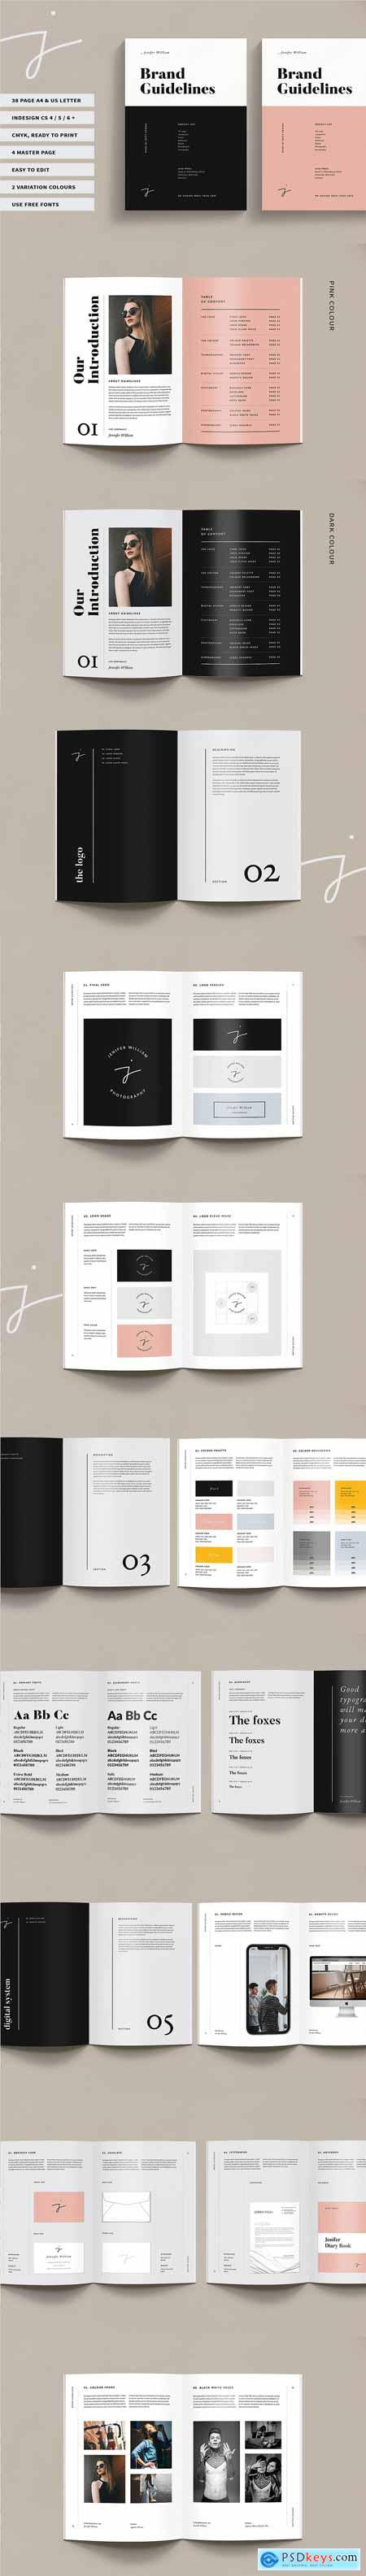 Brand Guidelines 3411951